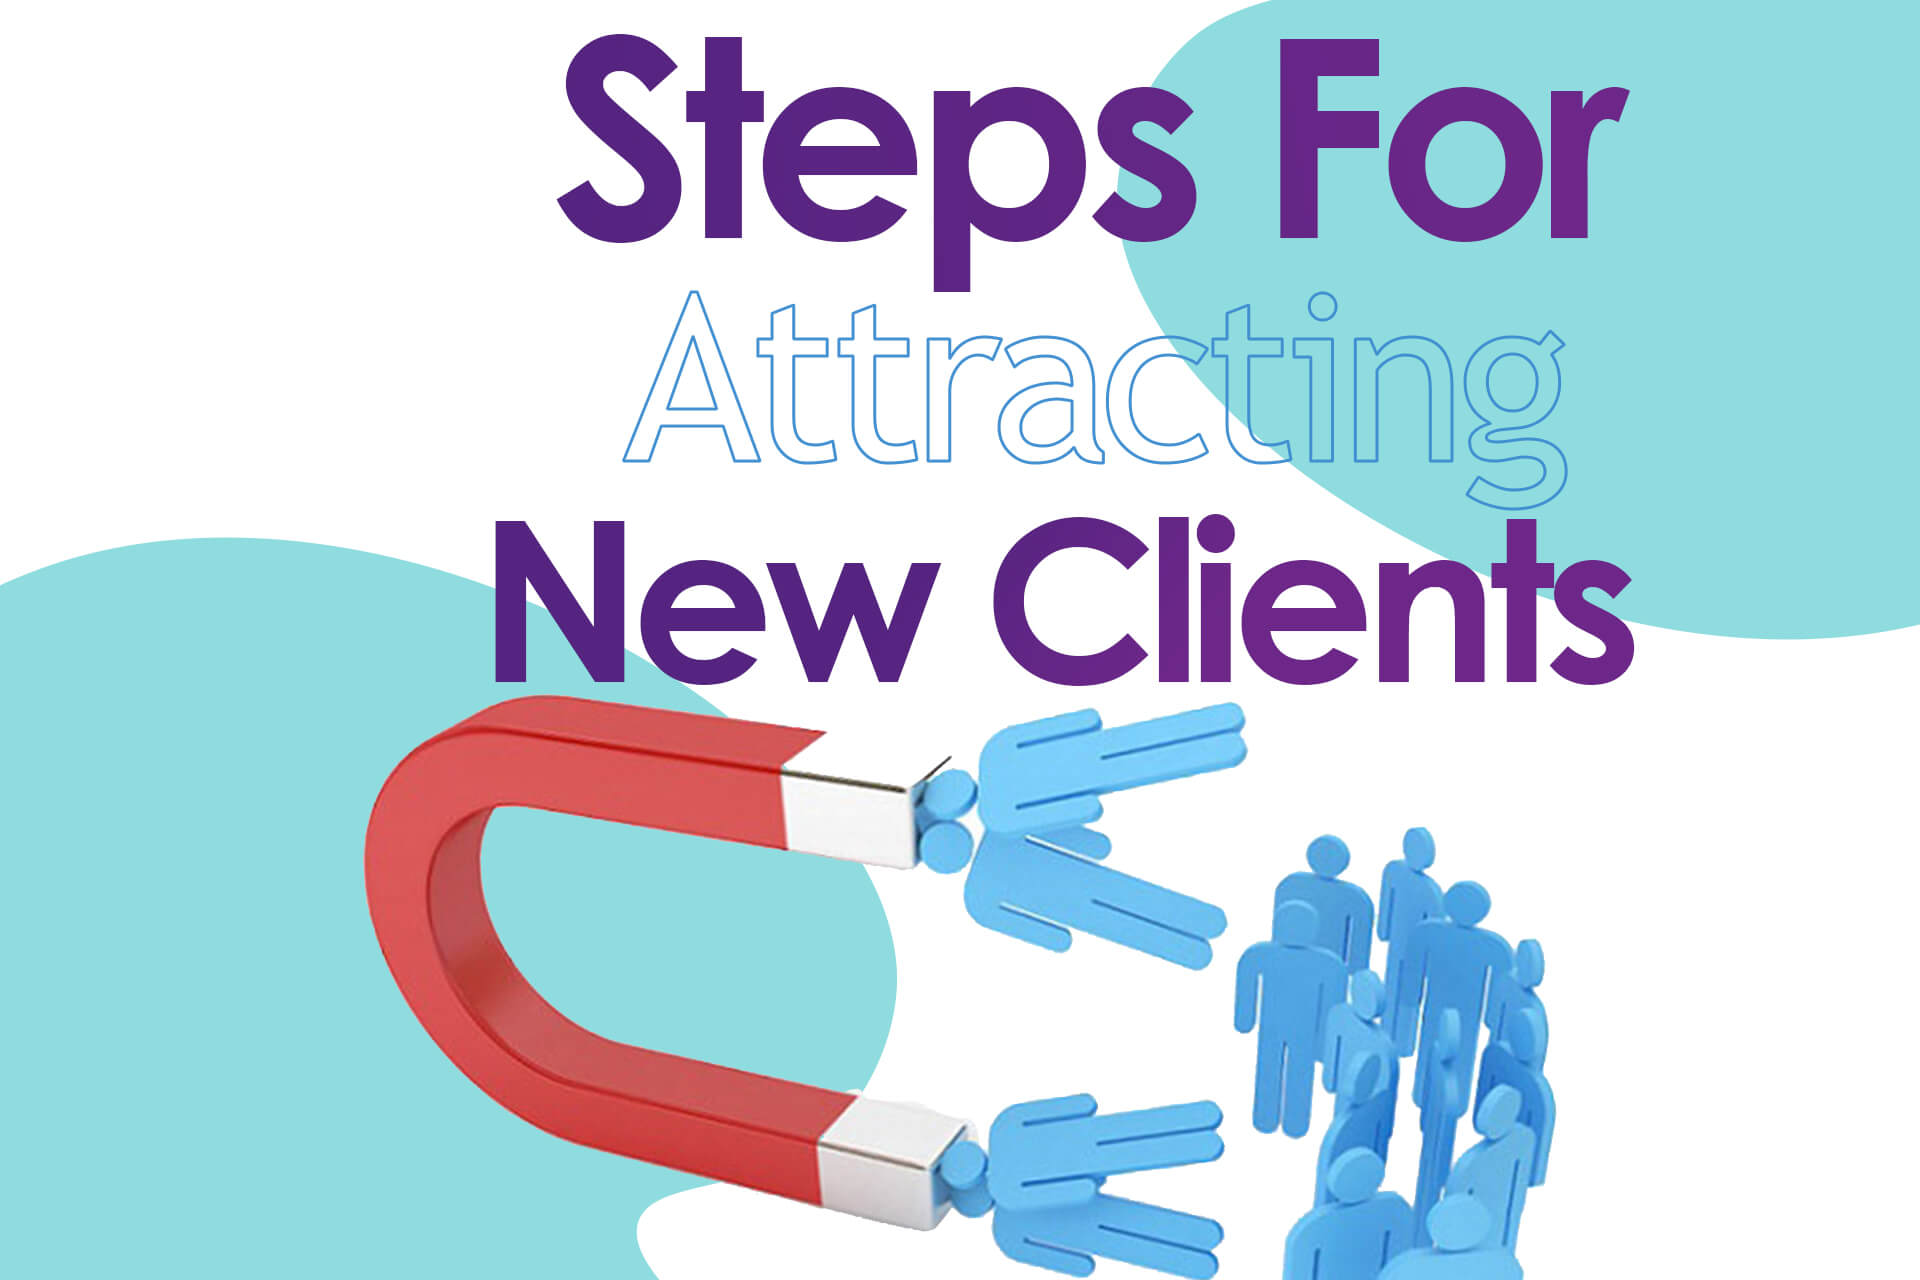 Steps For Attracting New Clients